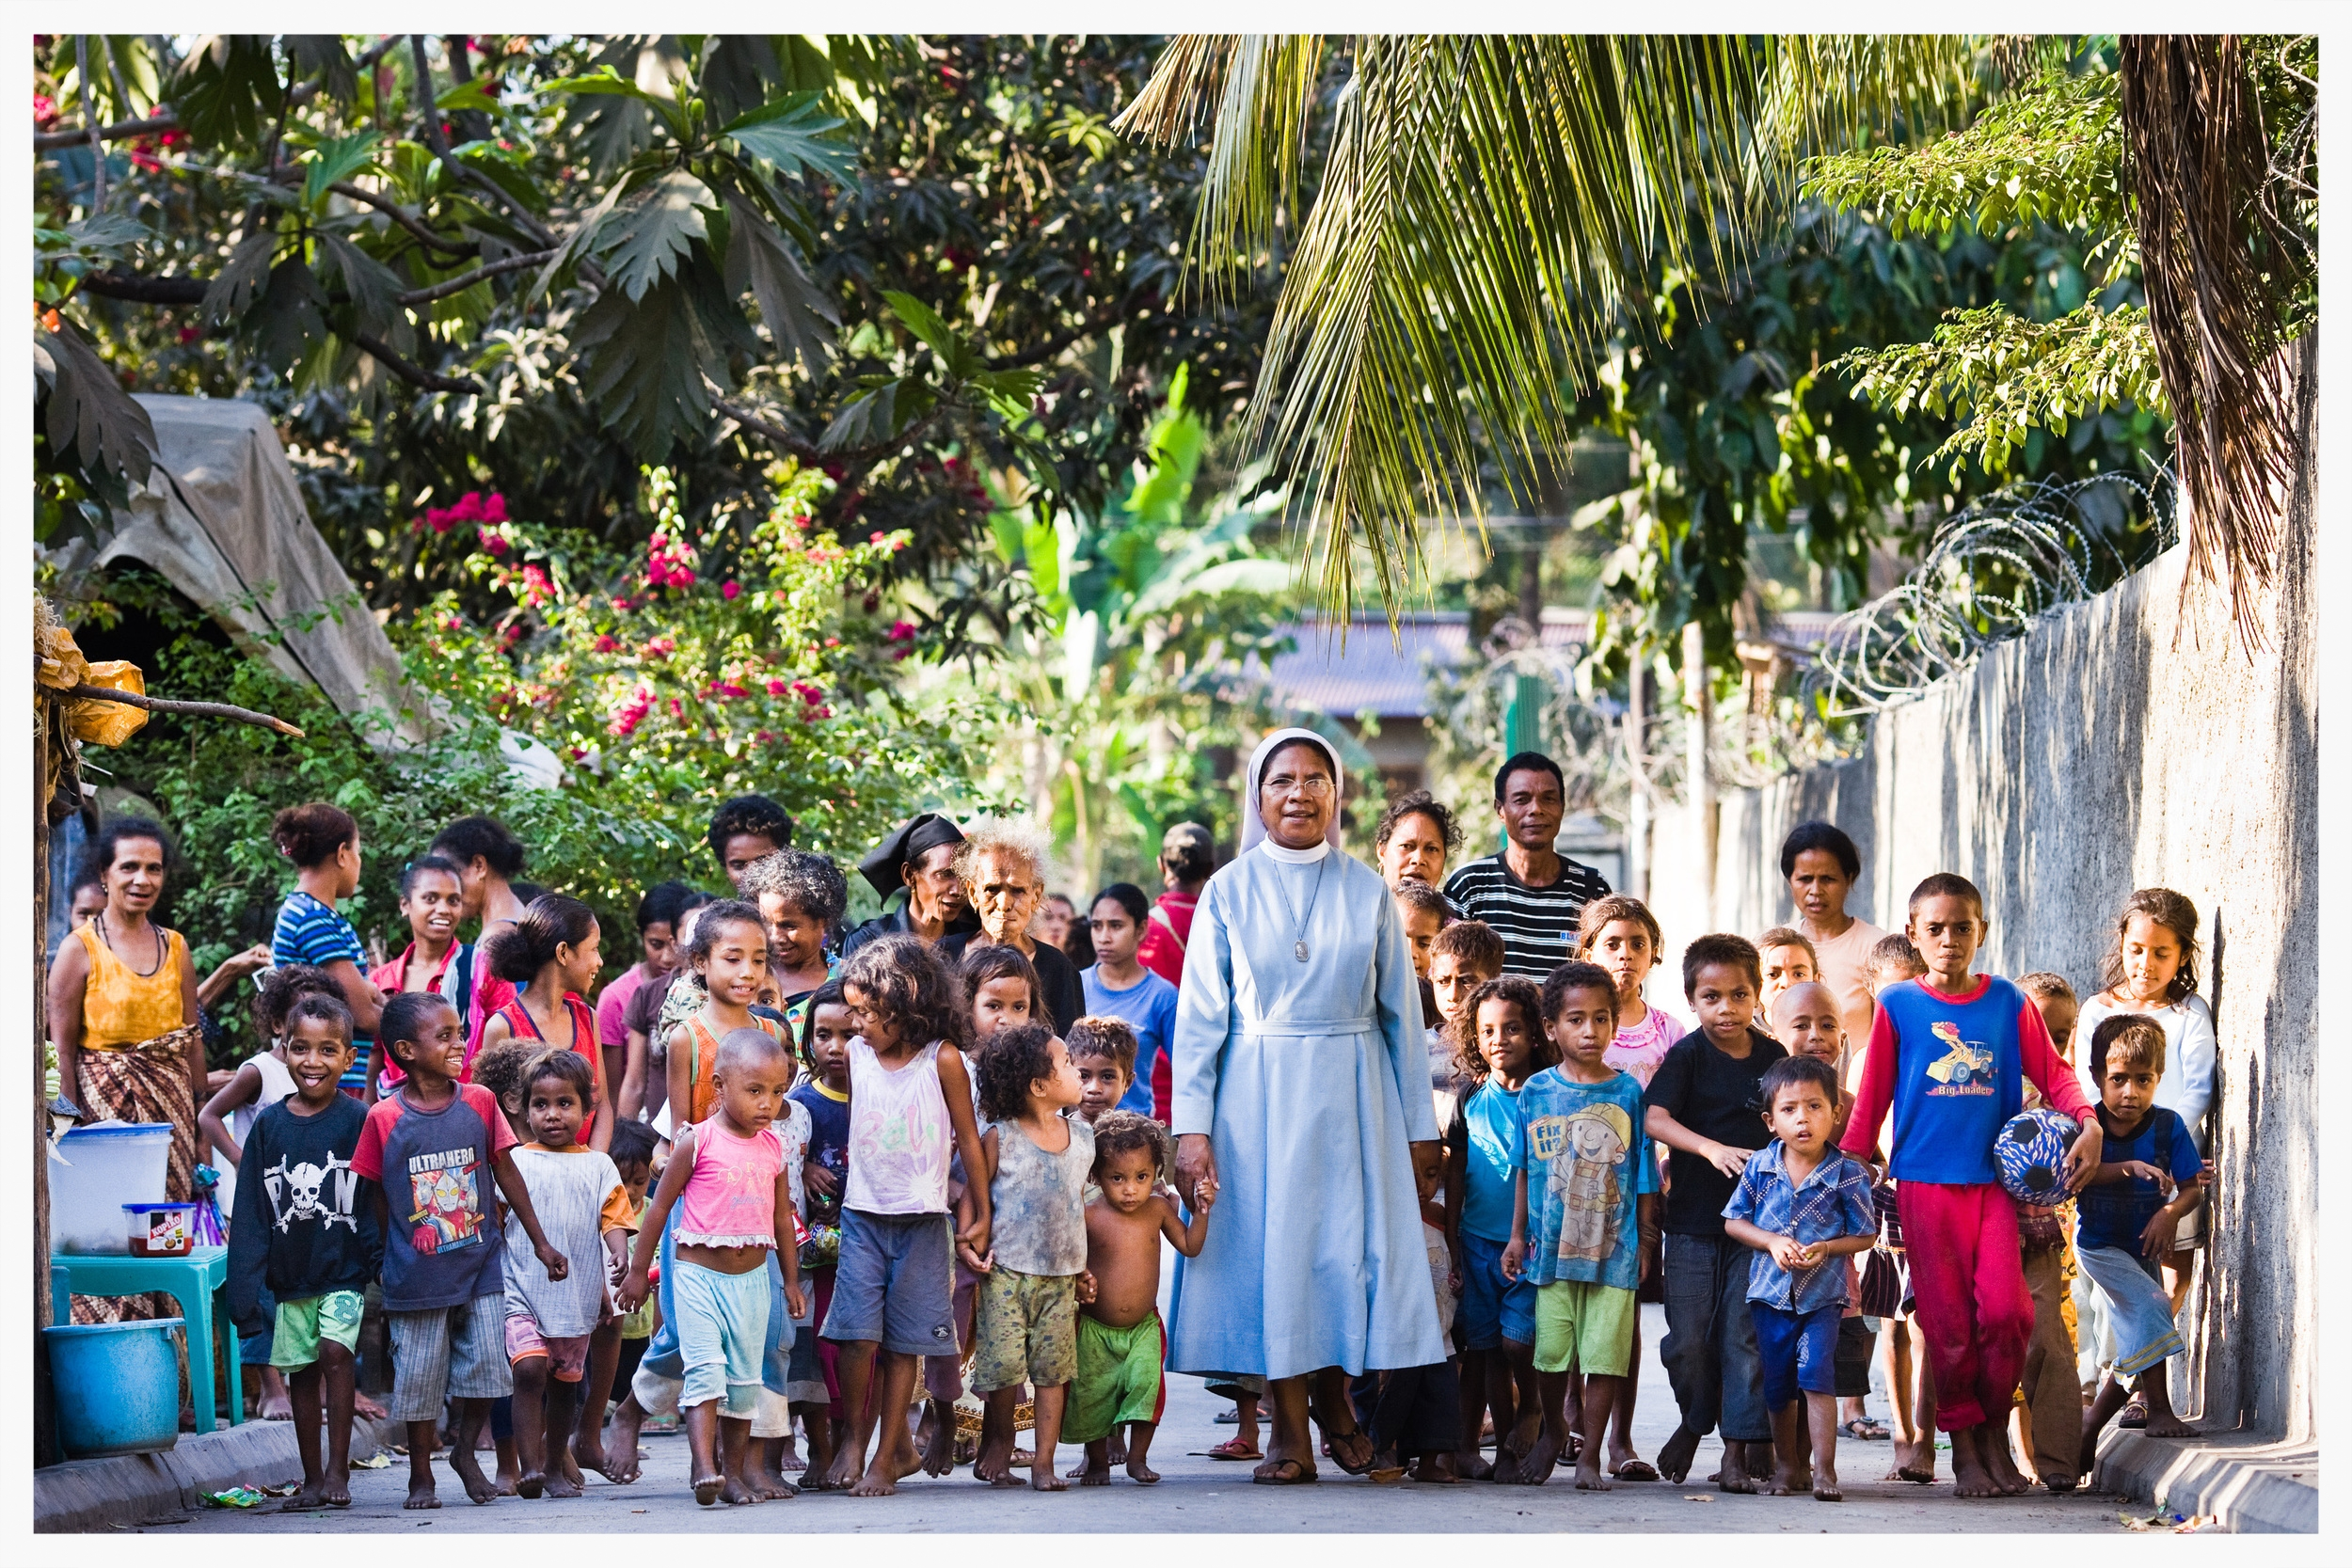 Sister Guilhermina Marcal at the Canossian Convent at Balide in Dili,East Timor.Photo: © Marcus Perkins